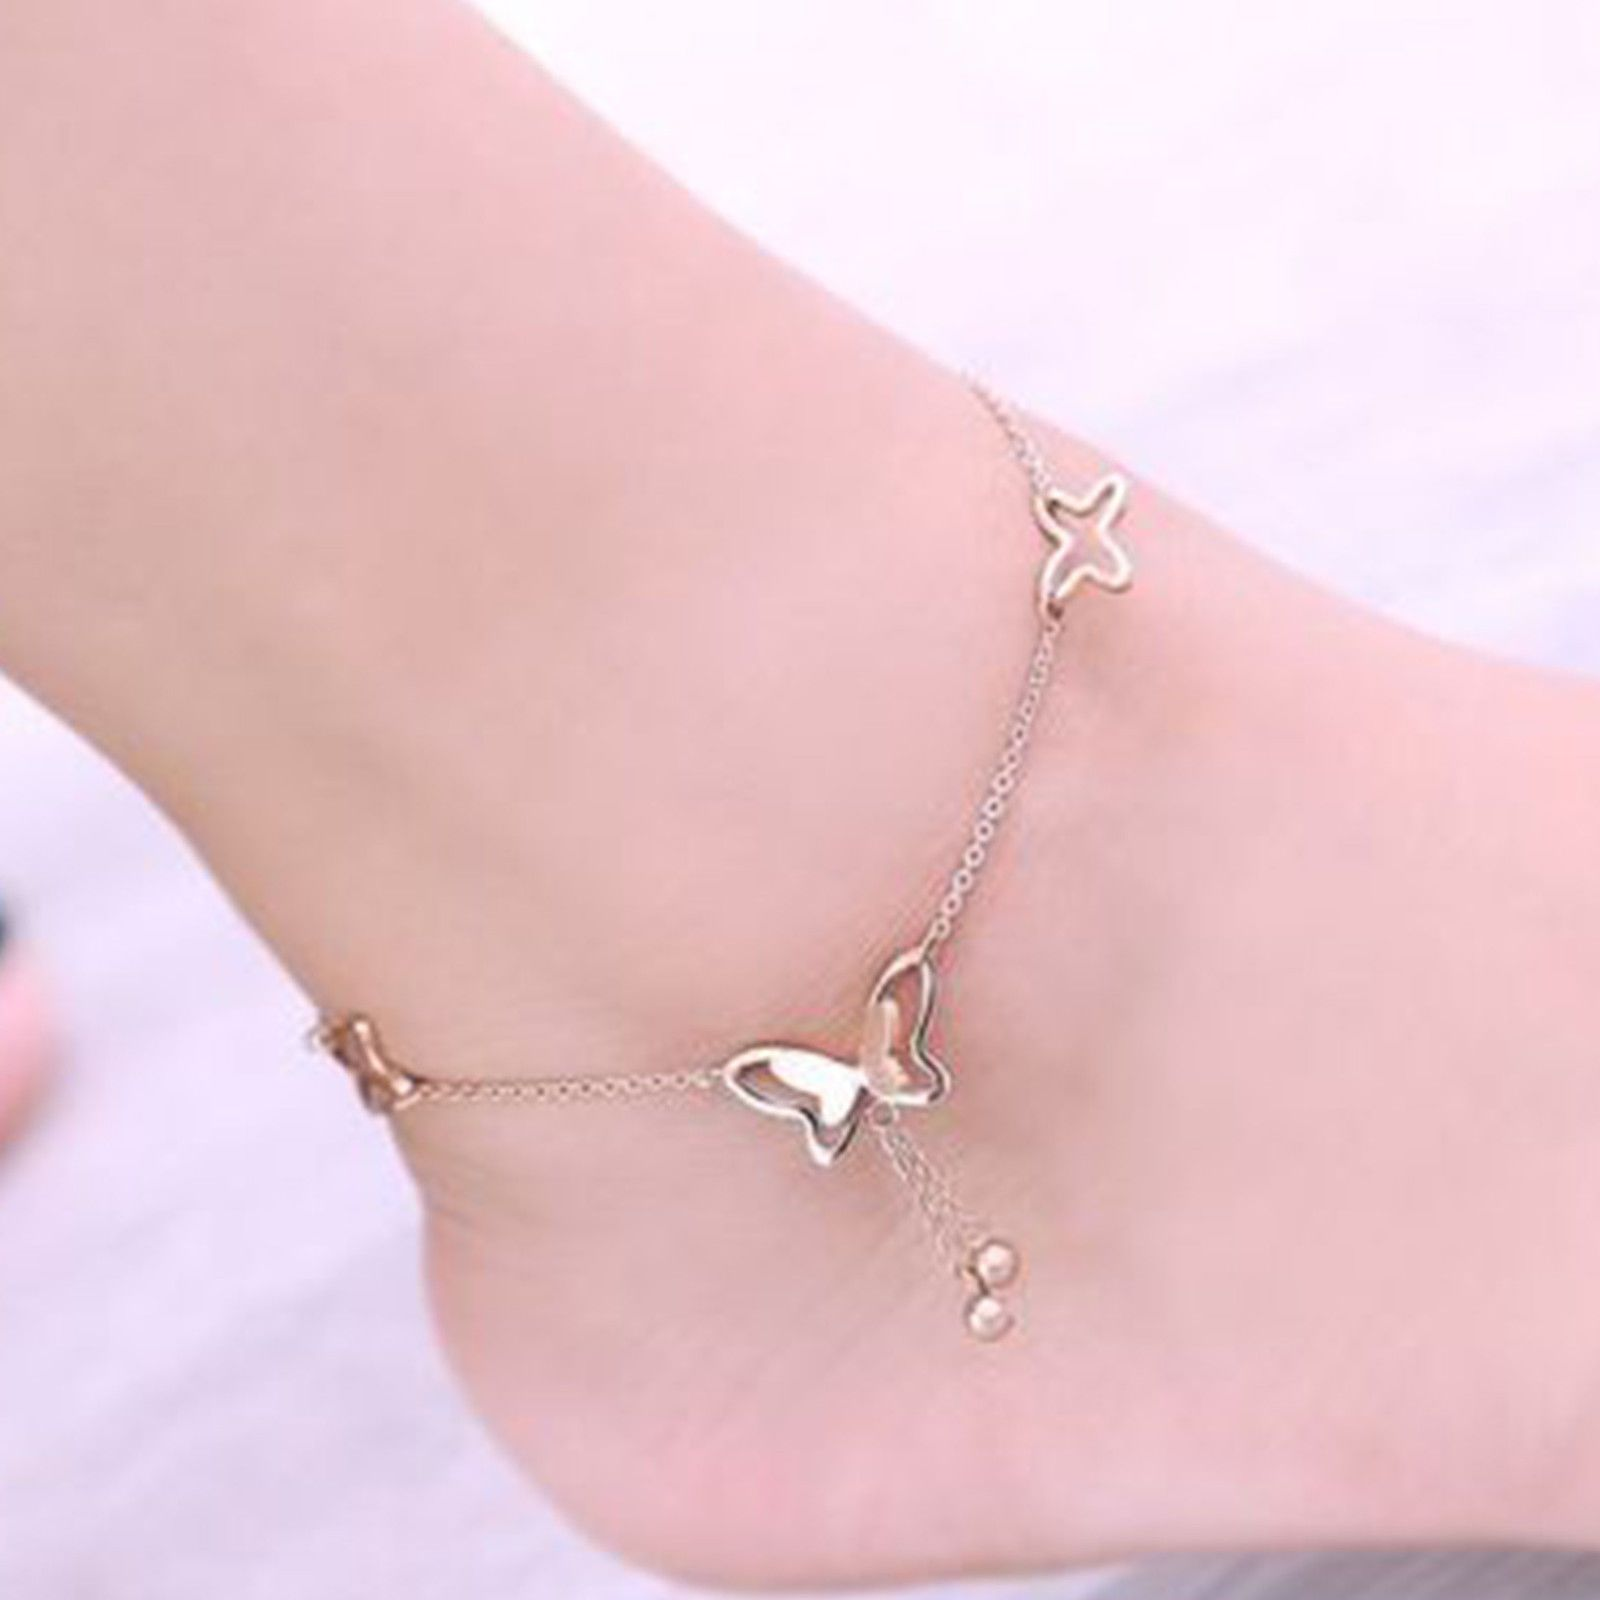 designs design womens anklet tattoo for myshoplah bracelet bracelets photo women ankle